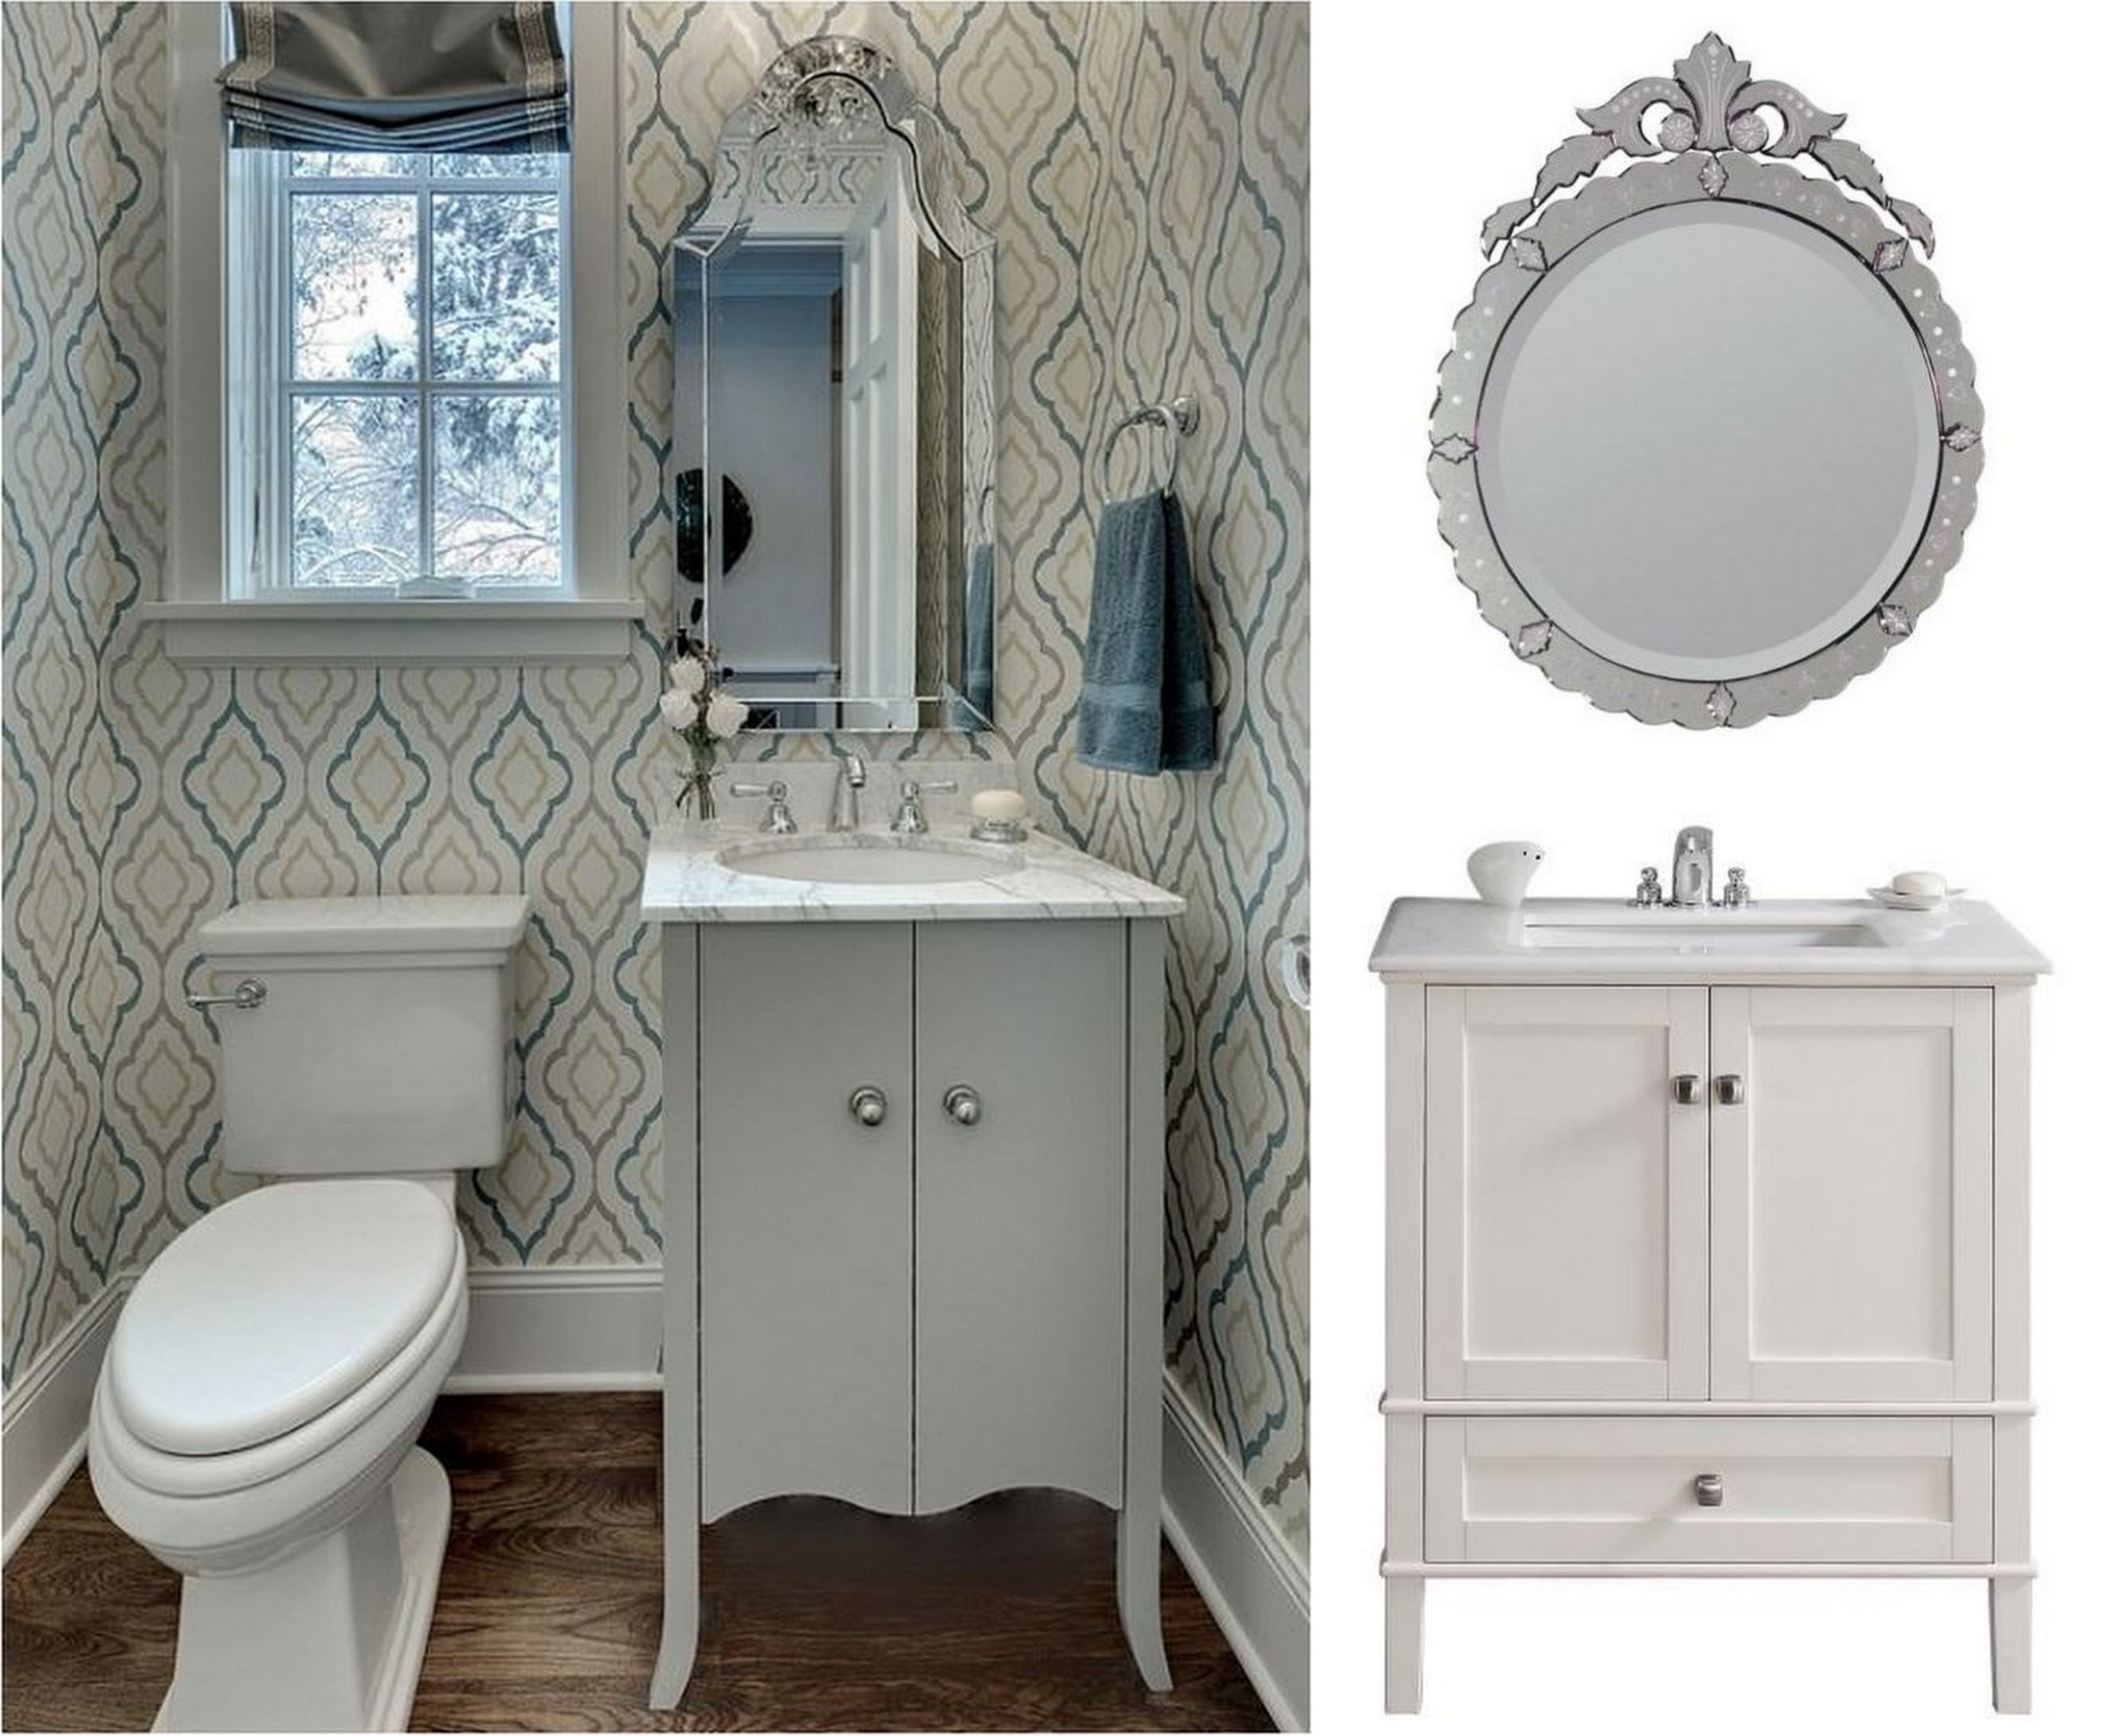 Stunning Modern Powder Room Aeccafe Archshowcase Furniture powder room vanities for small spaces